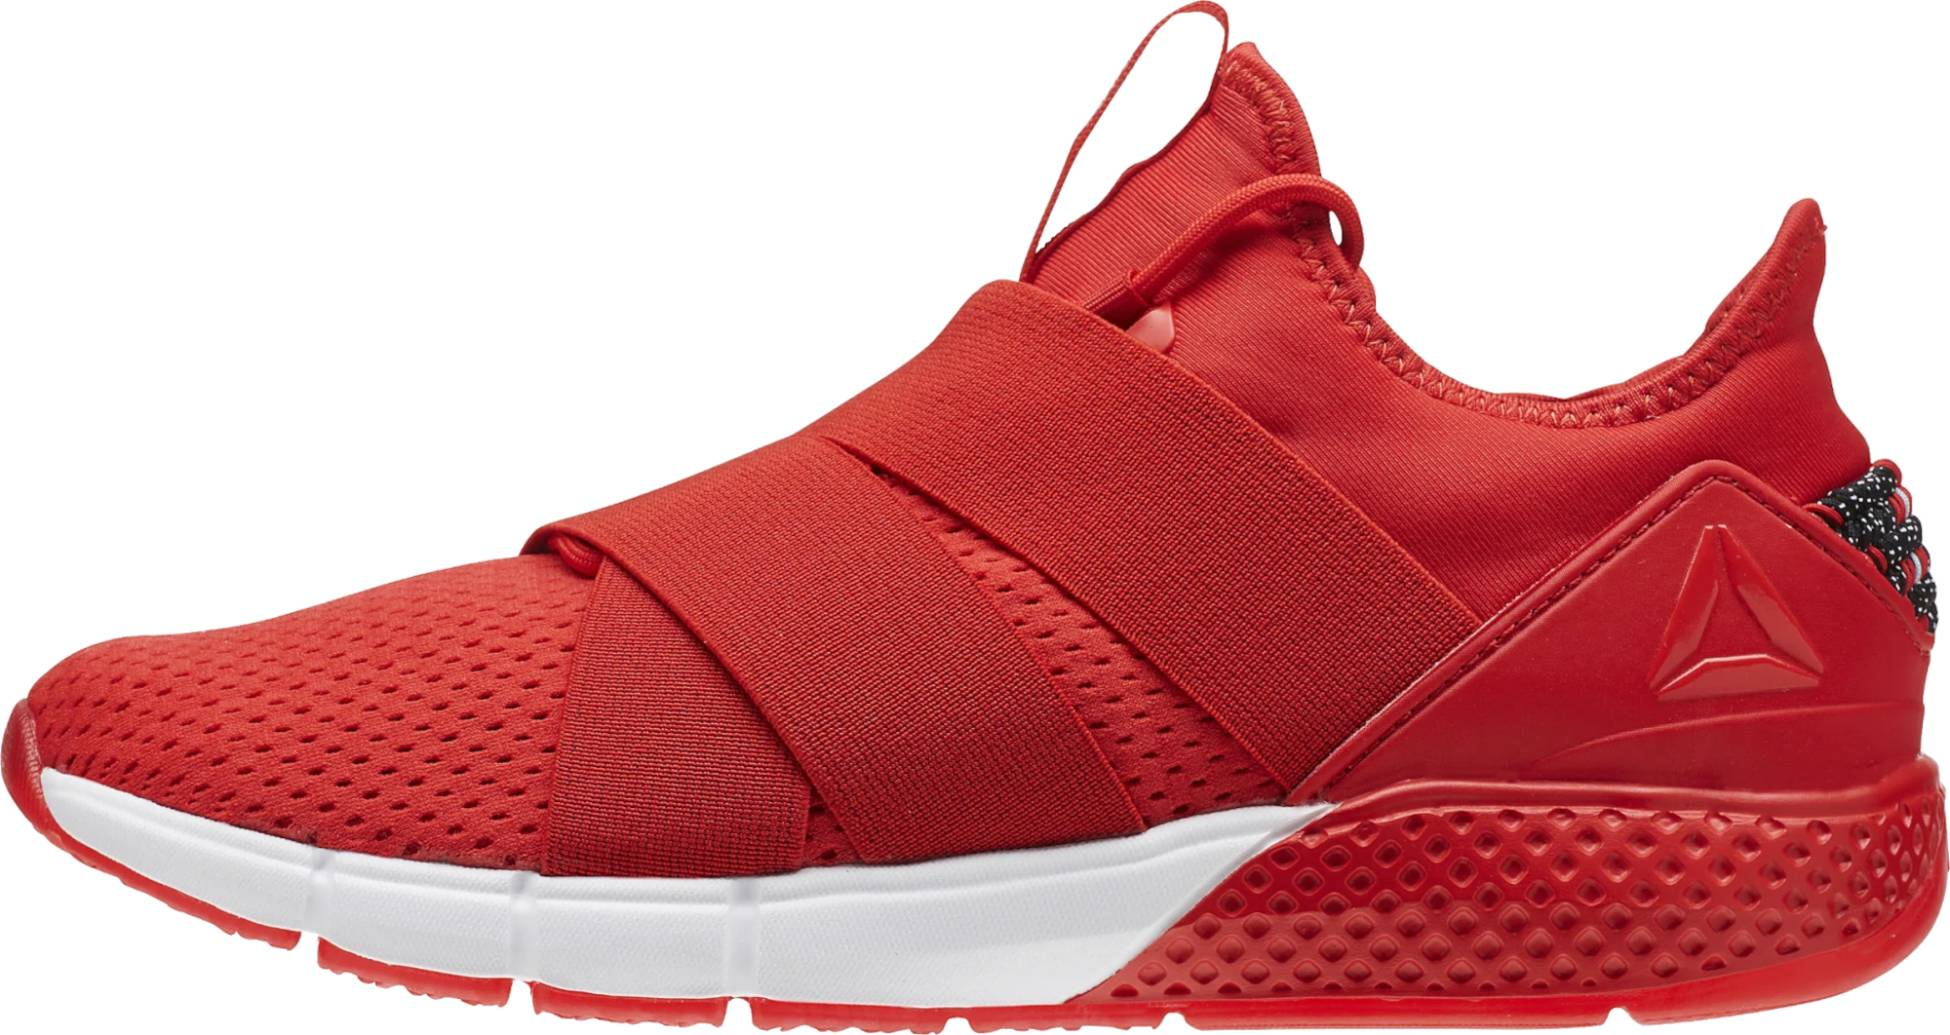 Only $69 + Review of Reebok Impact TR